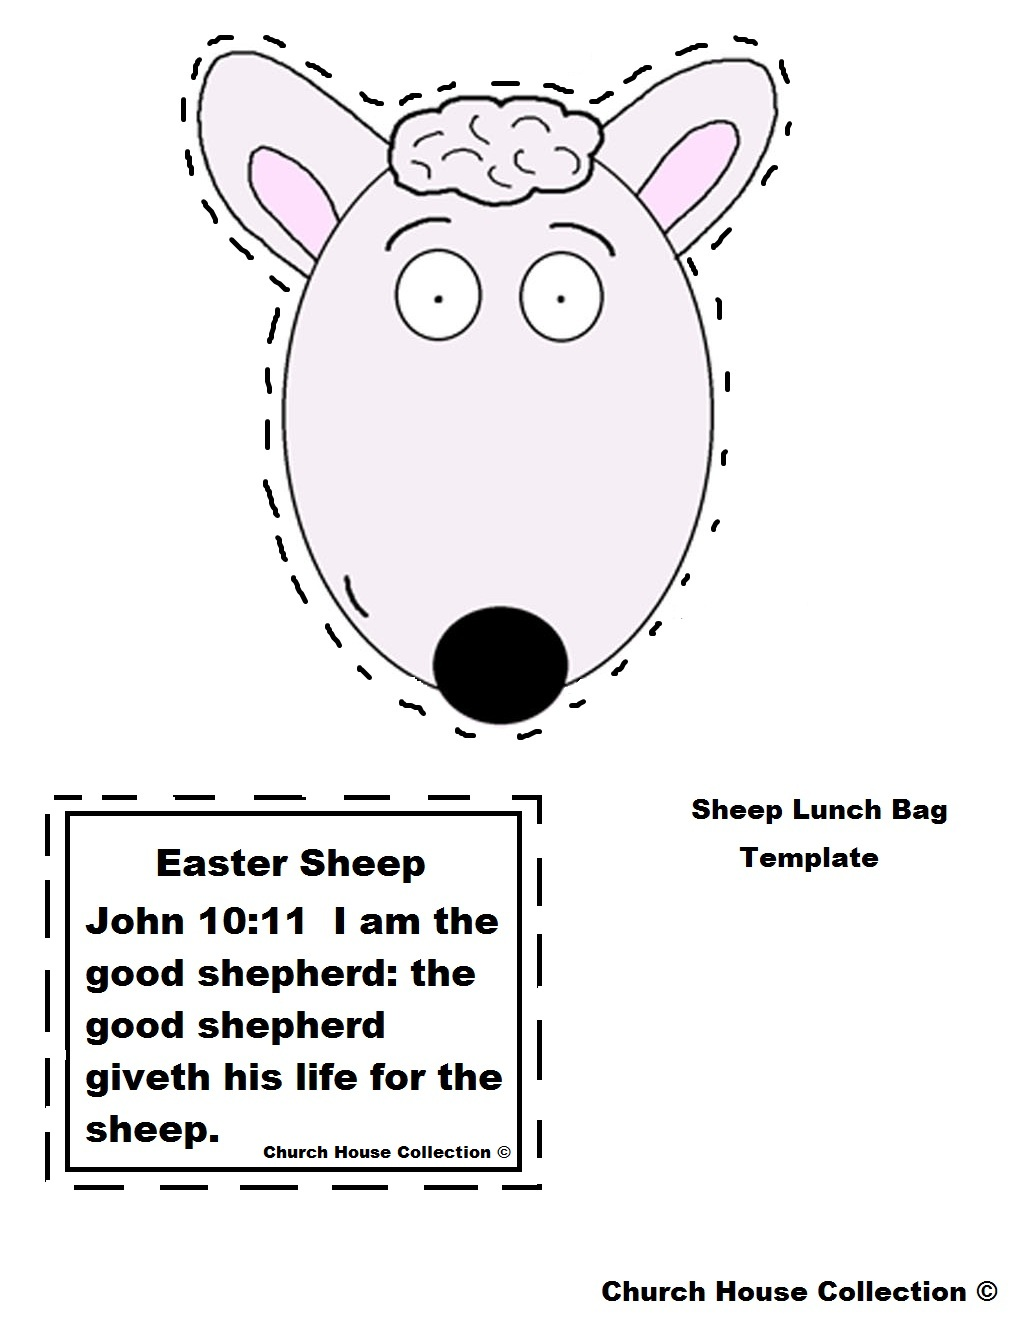 Church House Collection Blog: Easter Sheep Lunch Bag Craft